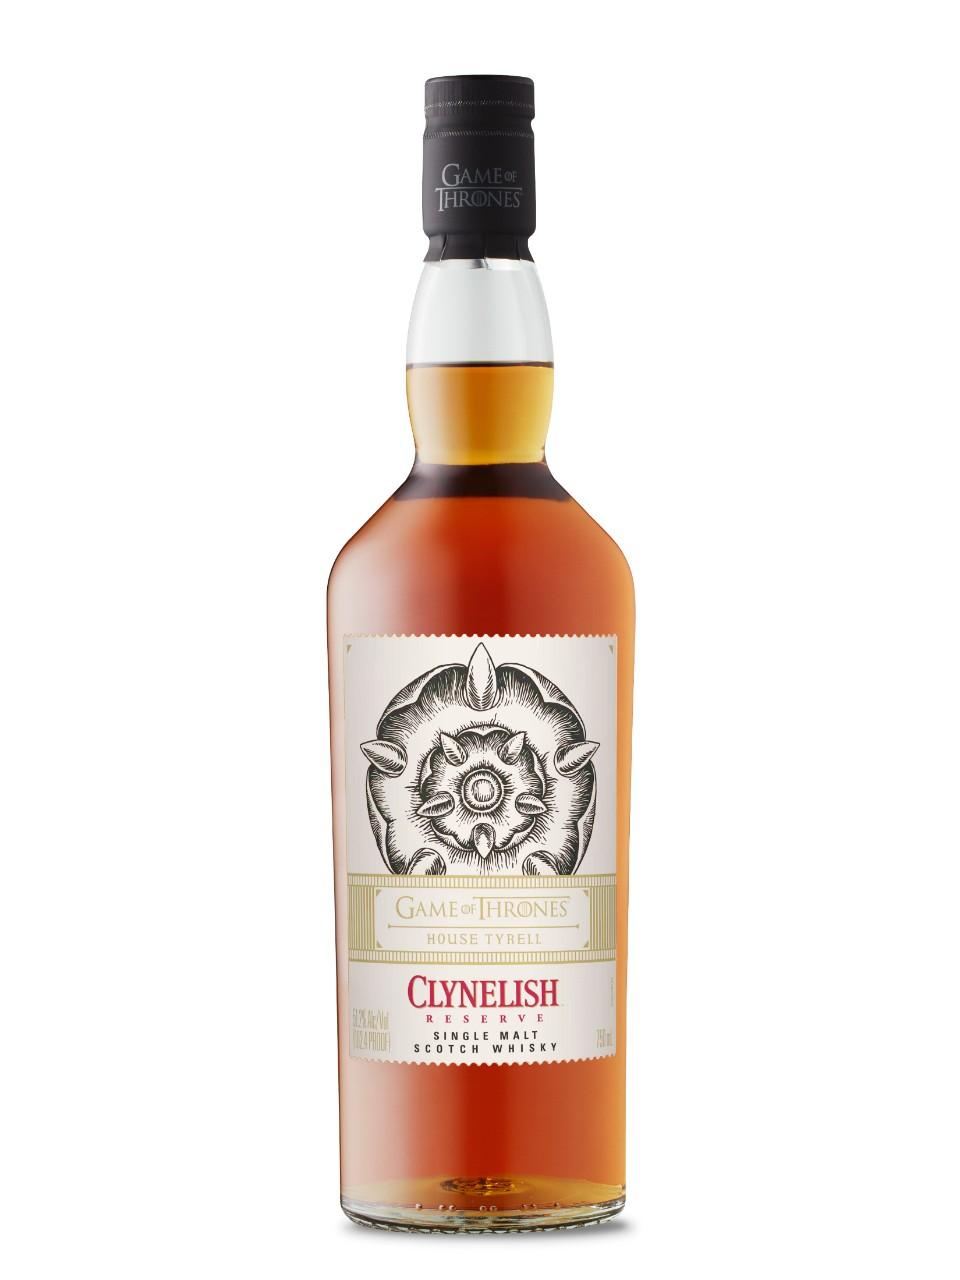 Whisky écossais Clynesh Nad - Game of Thrones House of Tyrell